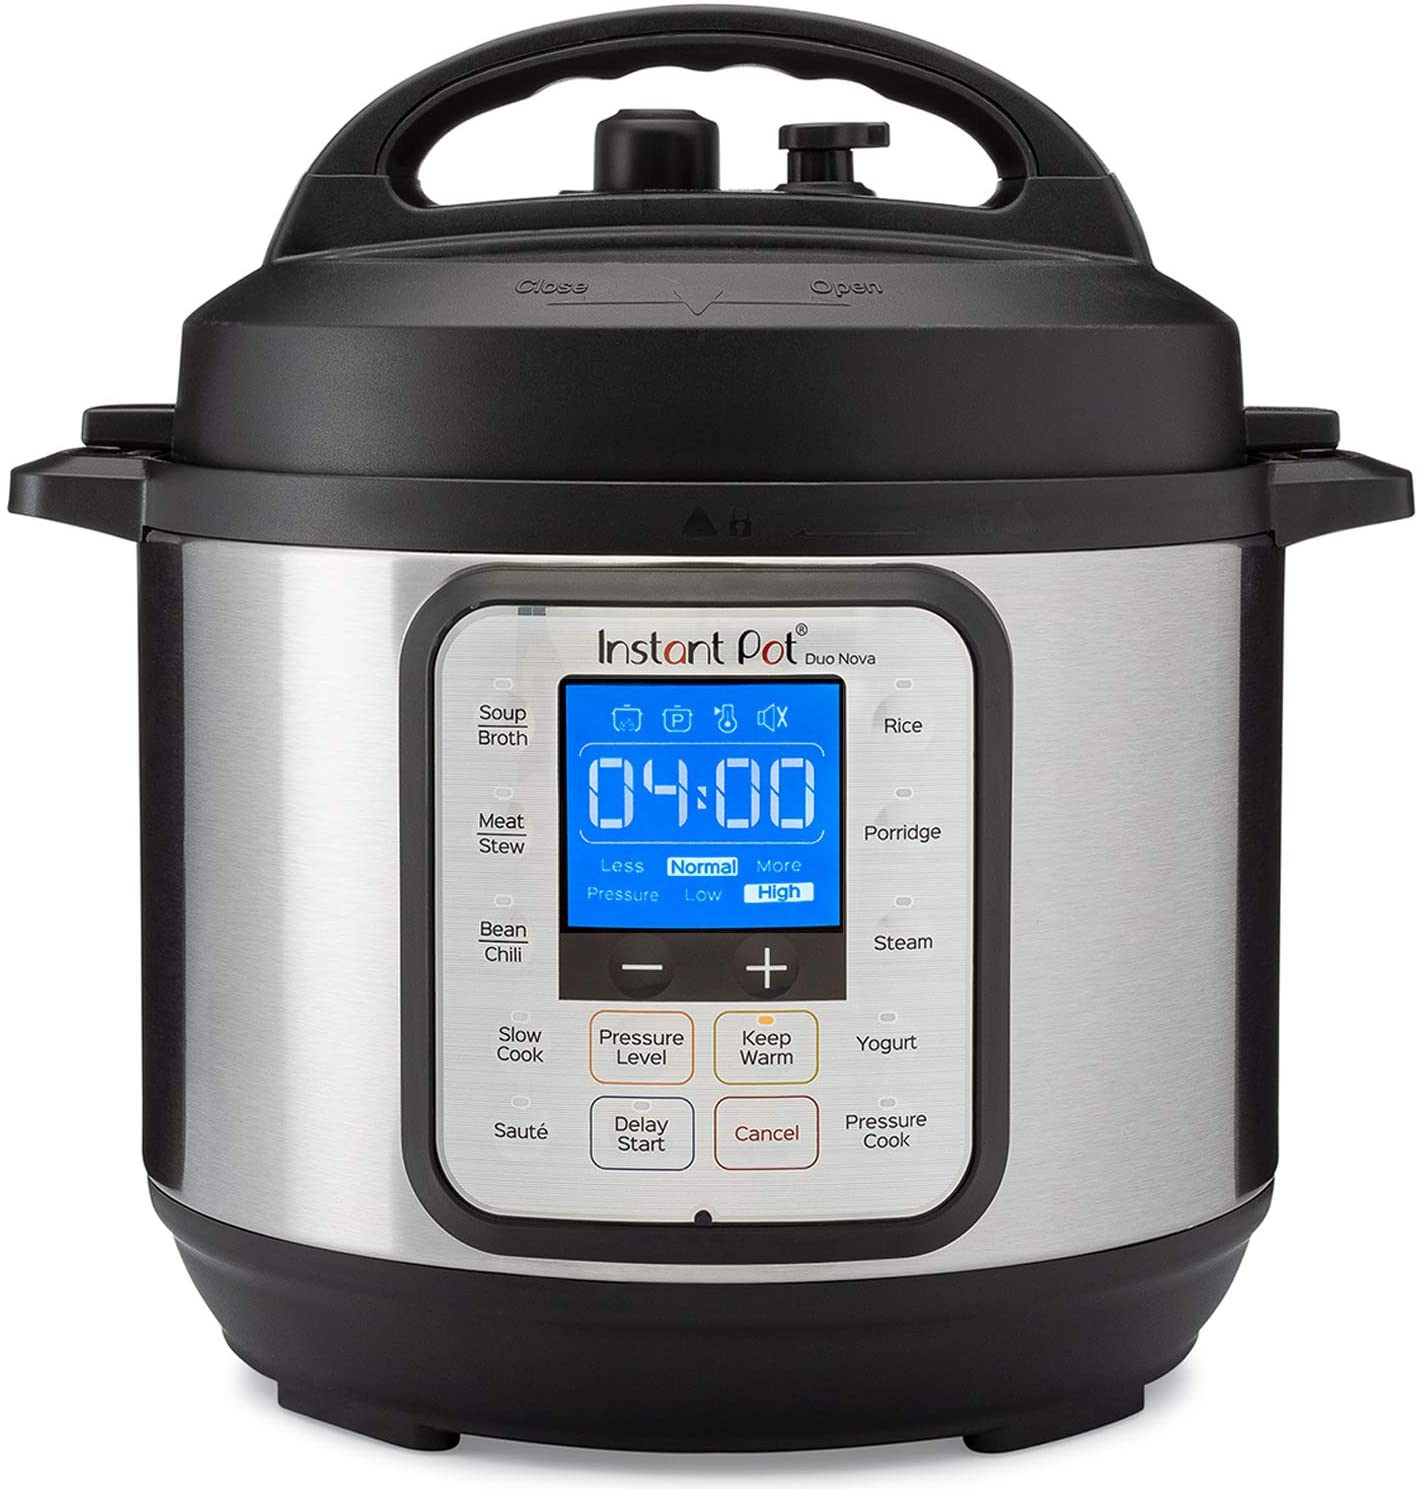 An awesome Prime Day deal on an Instant Pot!